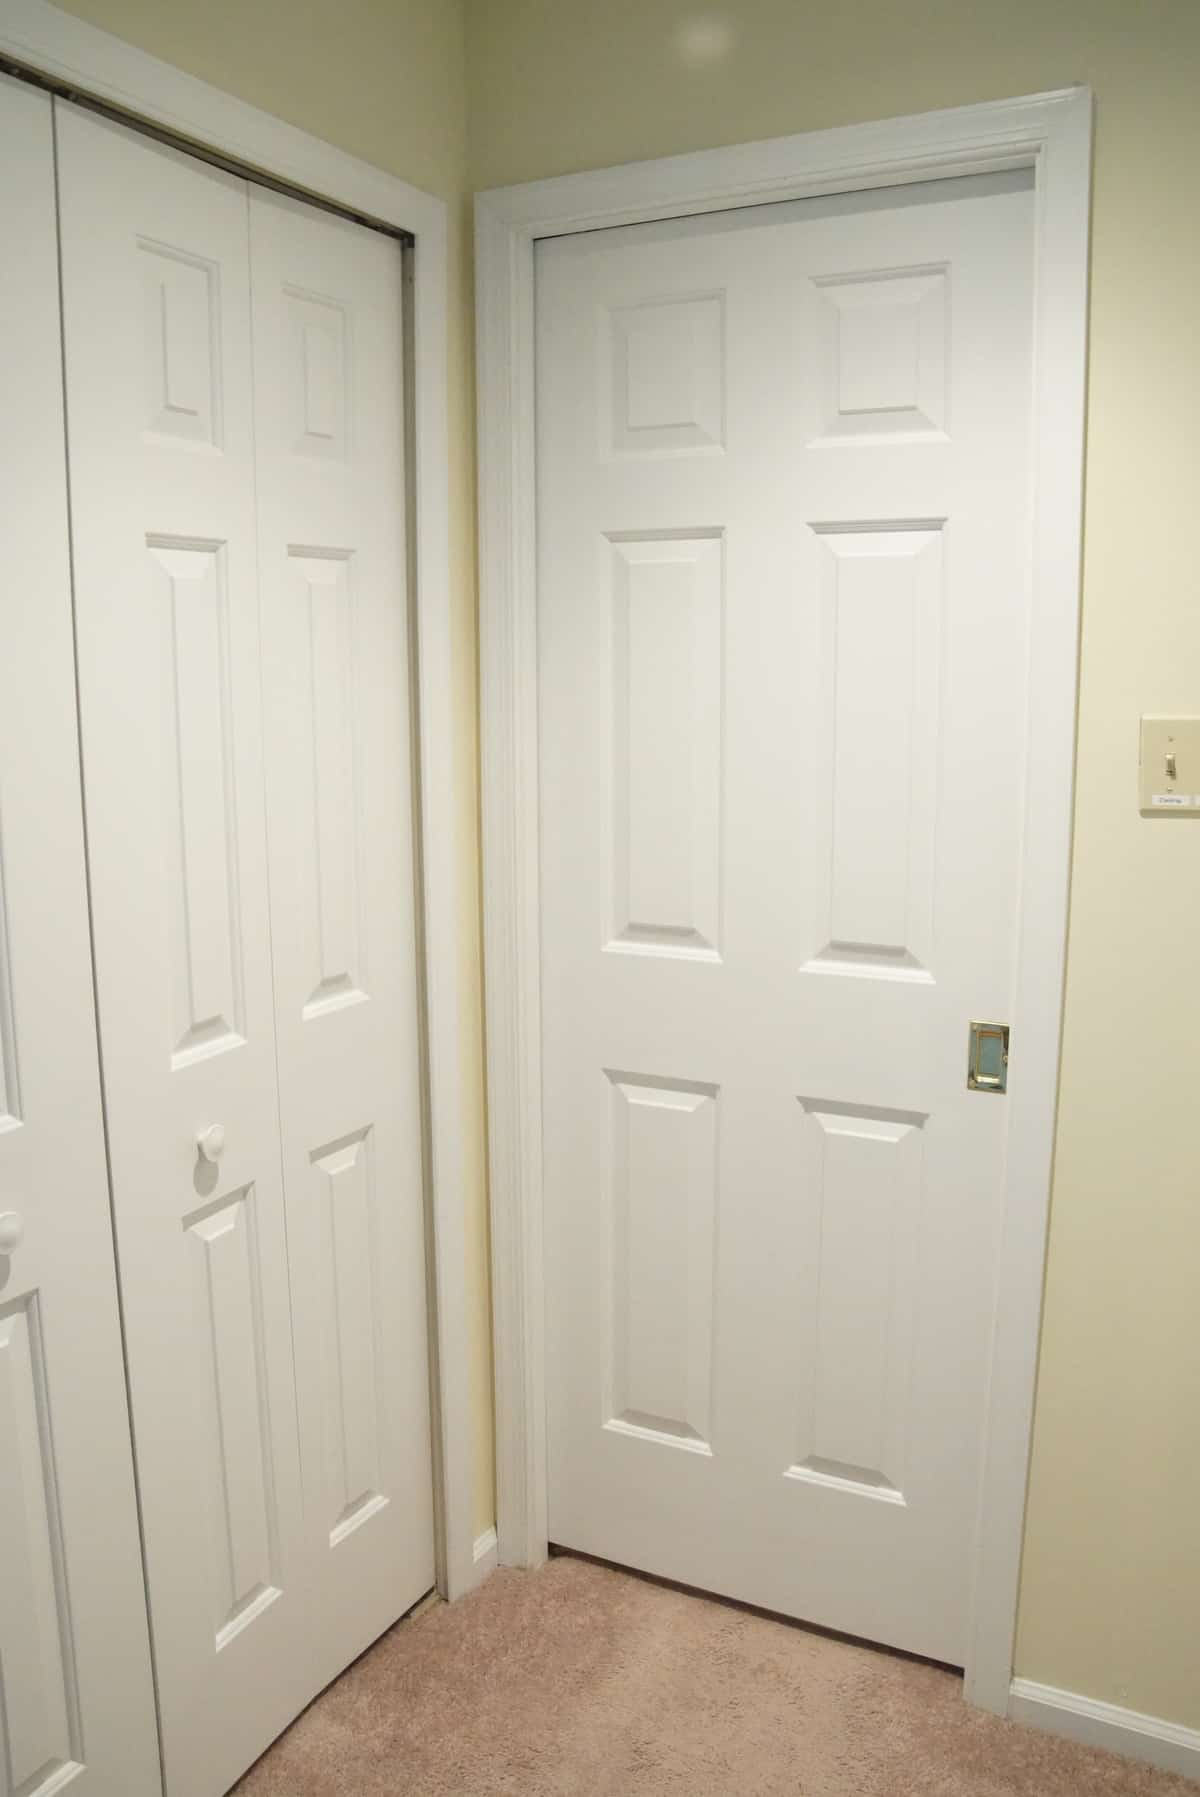 Pocket Doors For Closets Installed In Walk